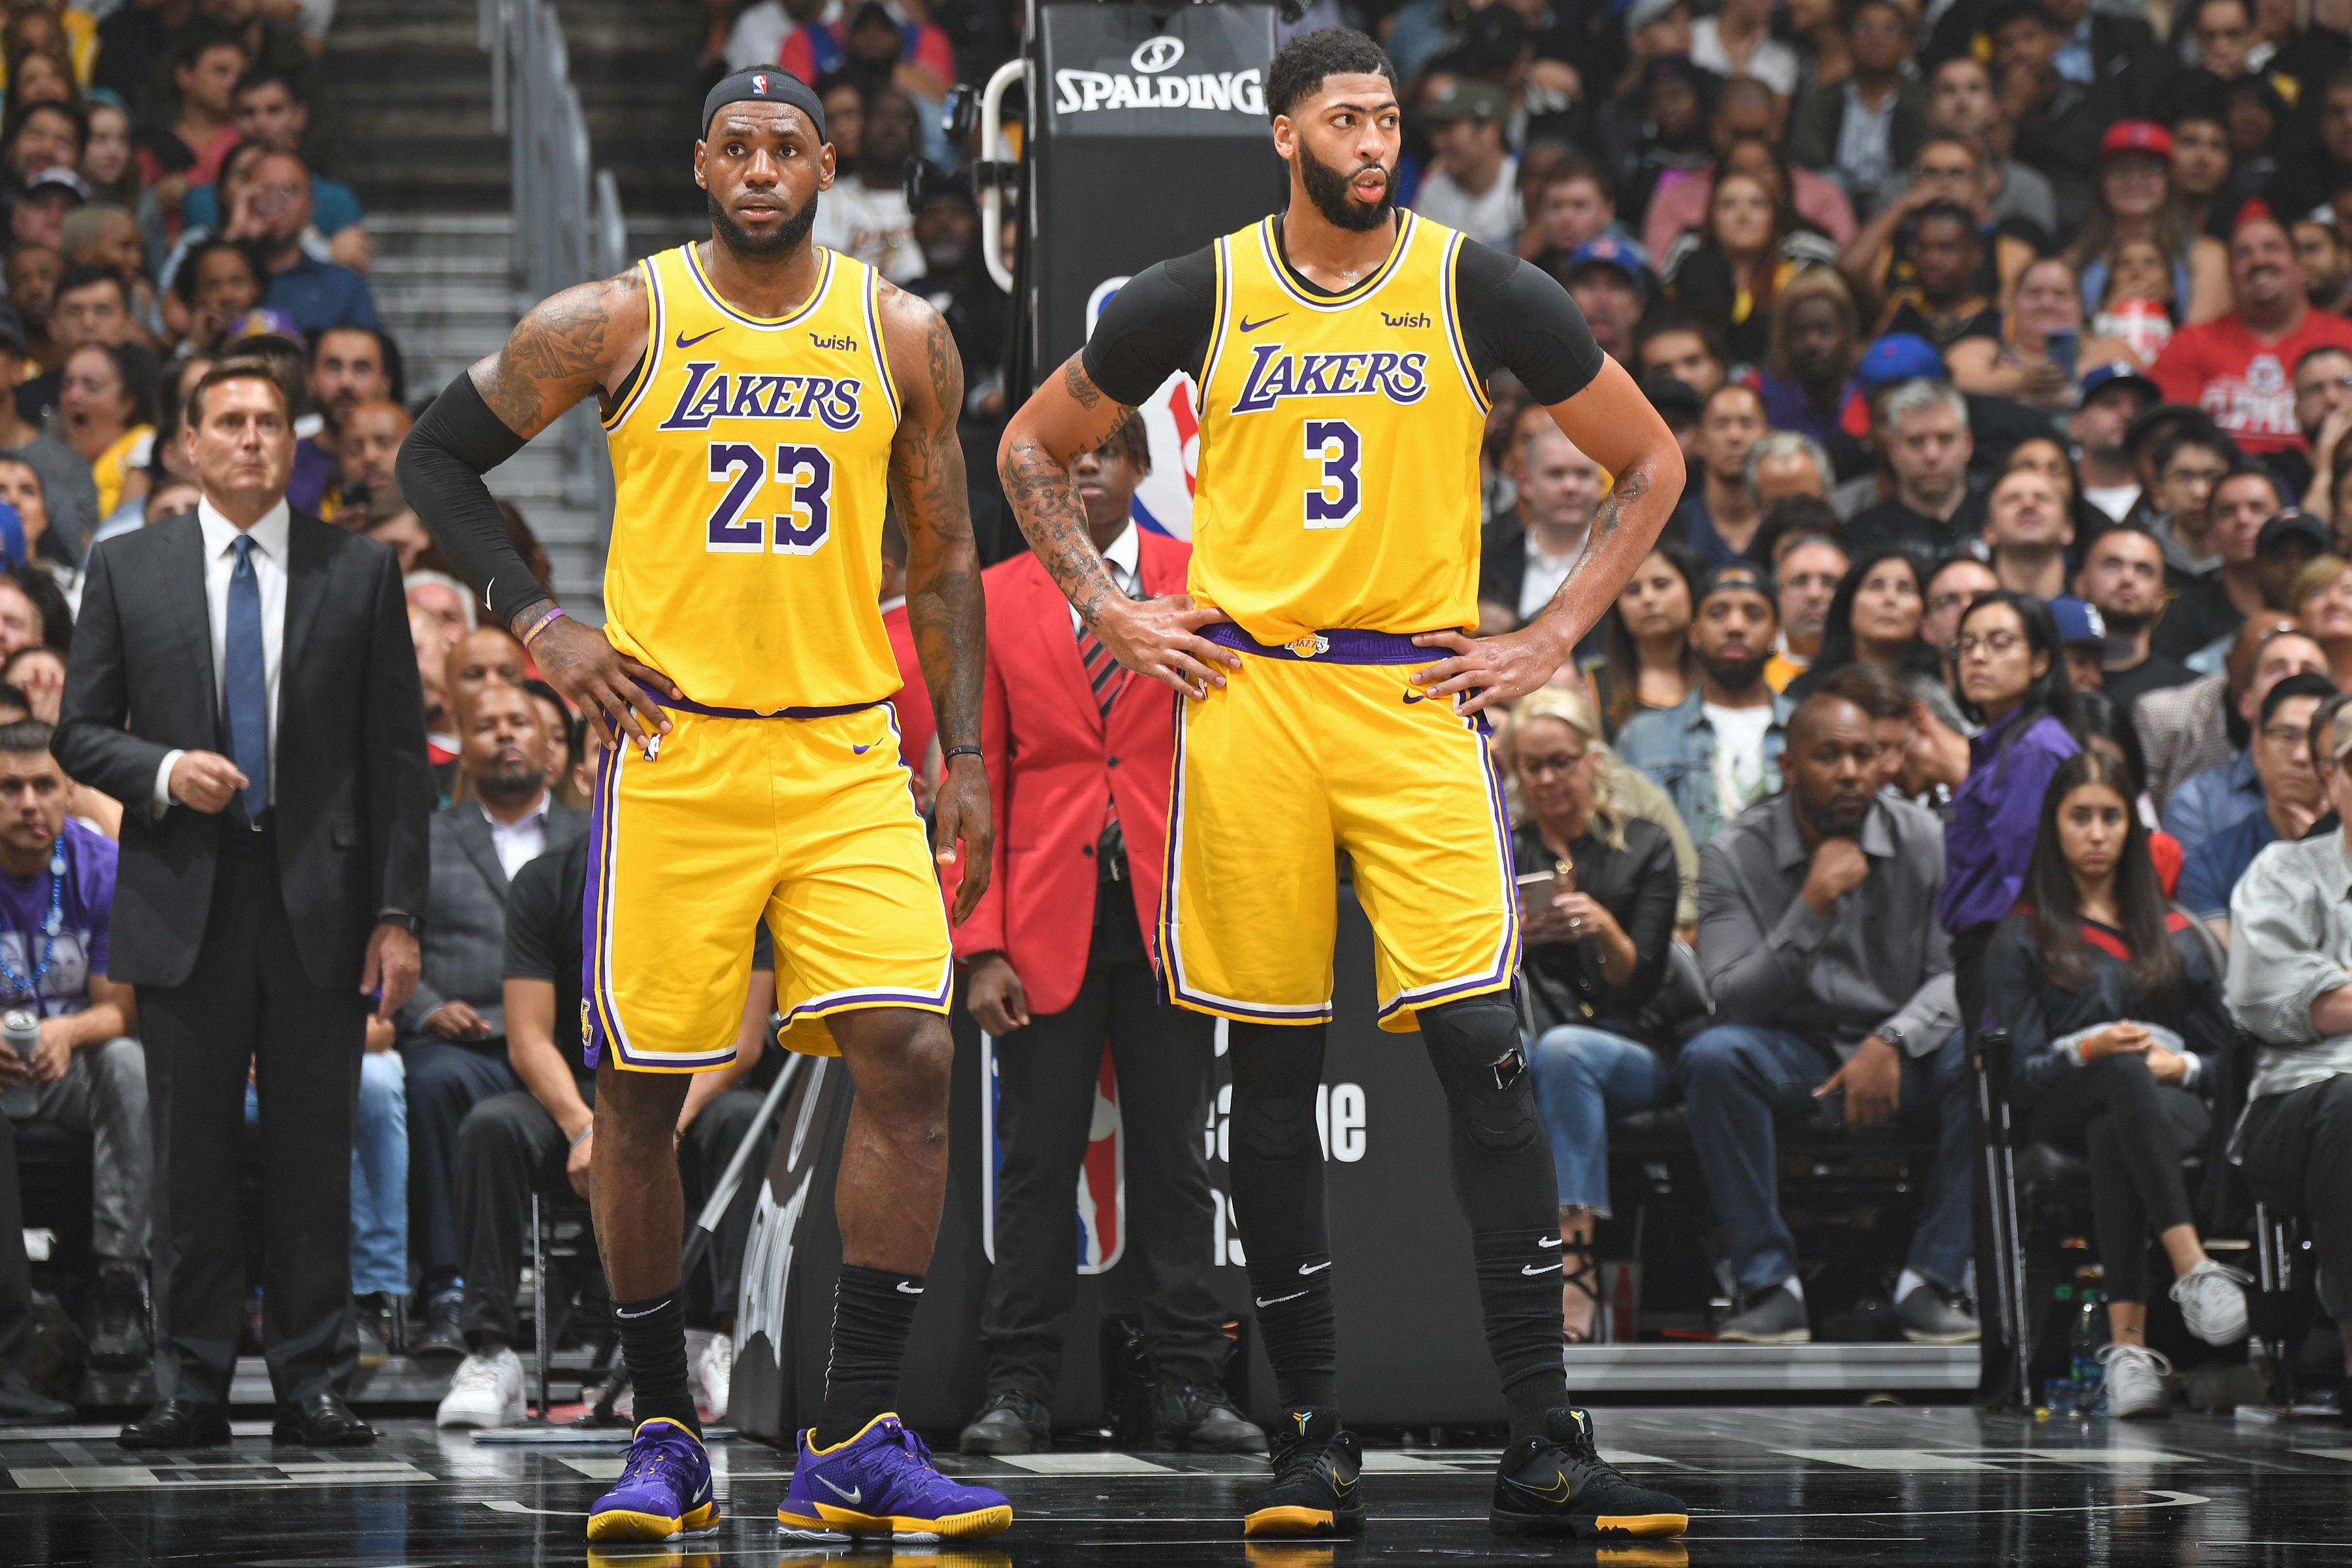 Los Angeles Lakers v LA Clippers